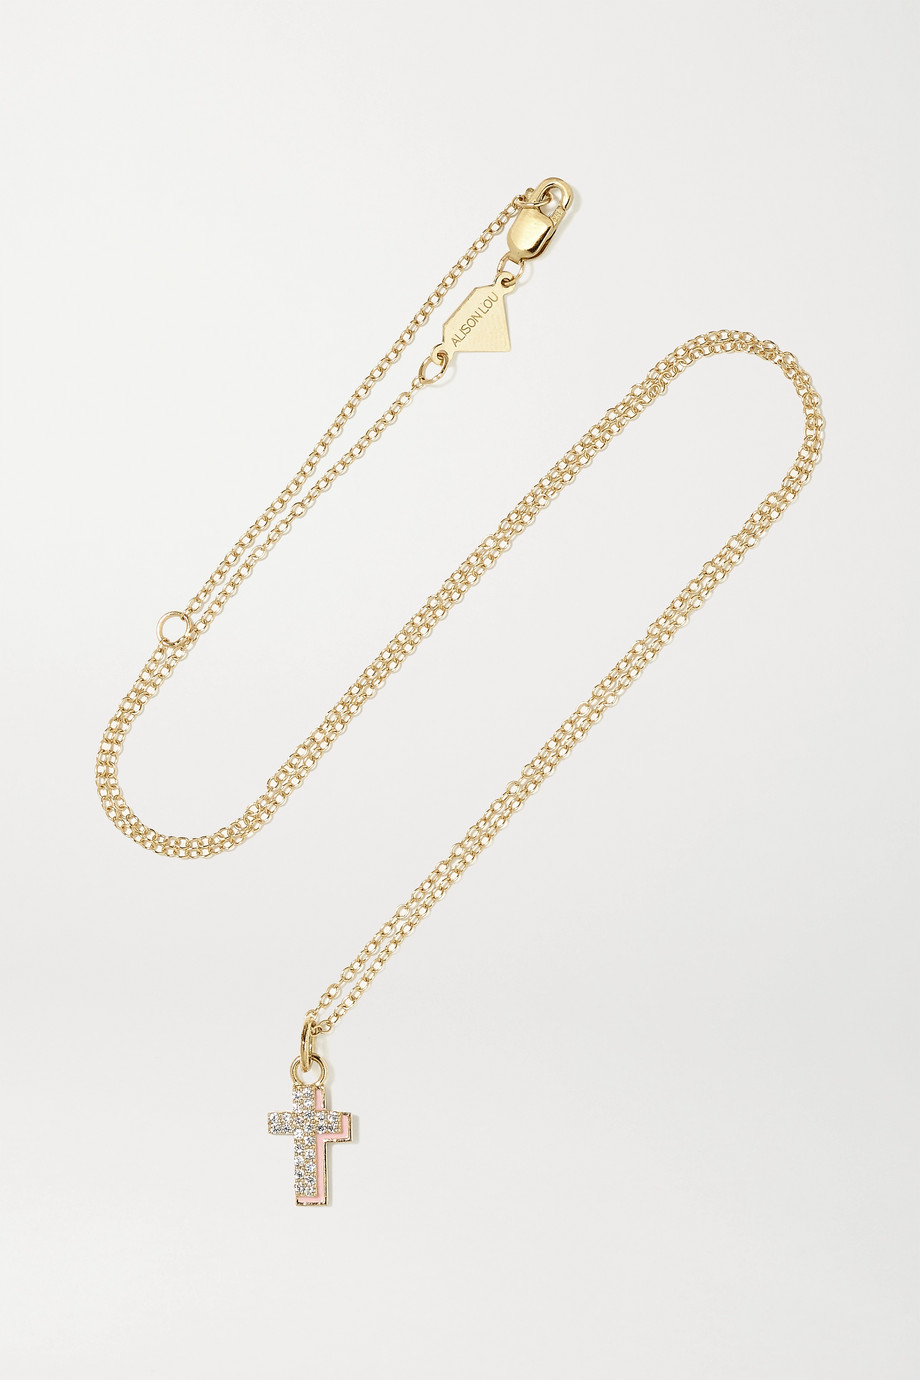 Alison Lou Cross 14-karat gold, diamond and enamel necklace